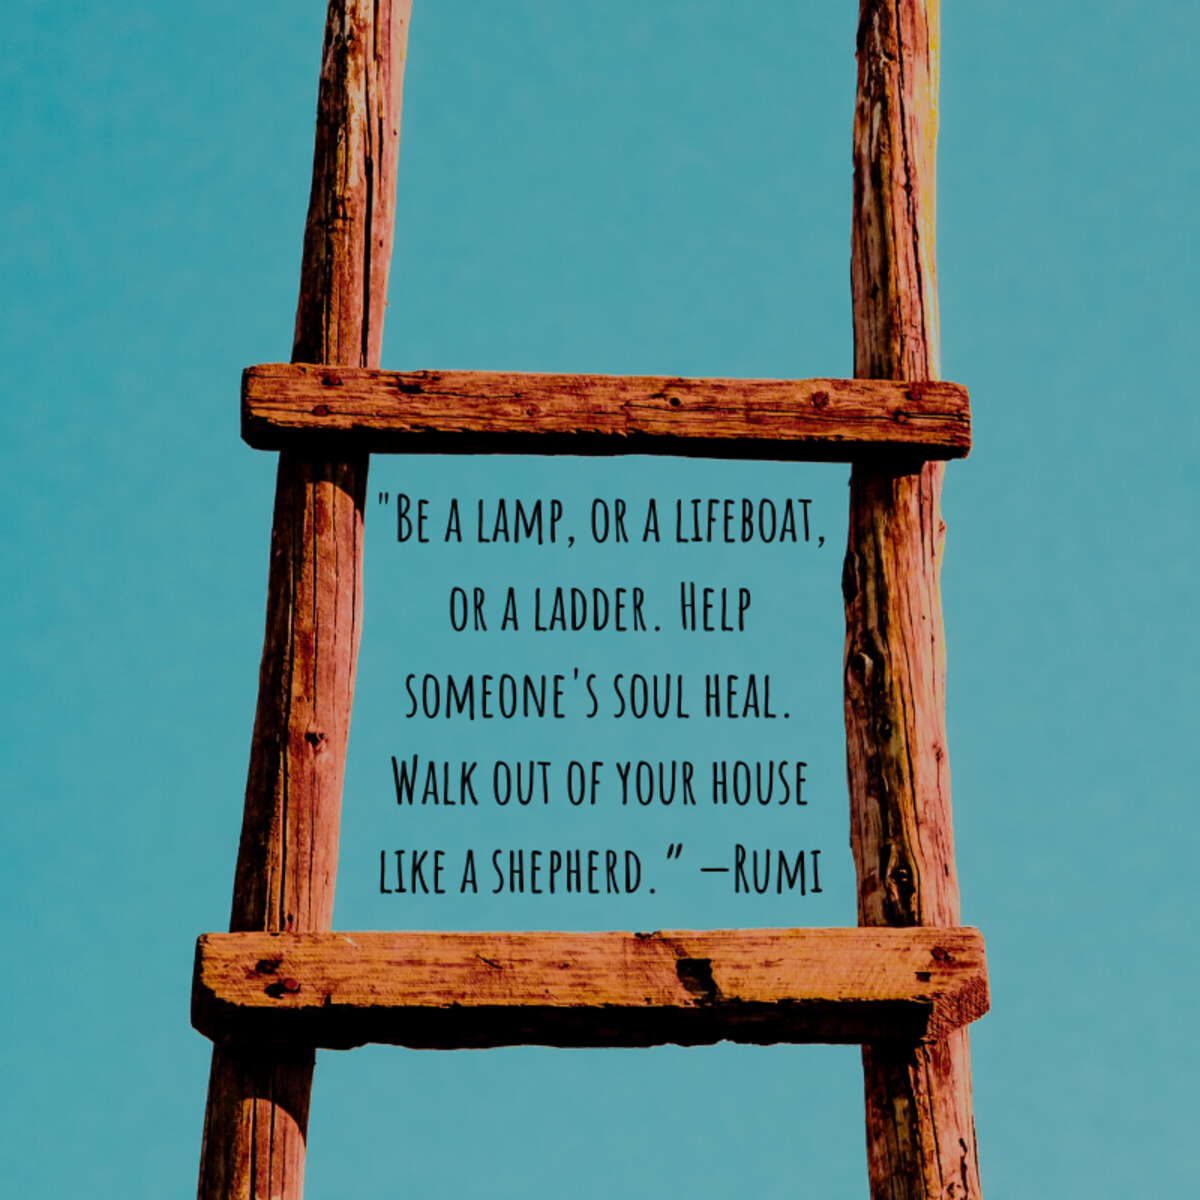 """Be a lamp, or a lifeboat, or a ladder. Help someone's soul heal. Walk out of your house like a shepherd."" —Rumi"